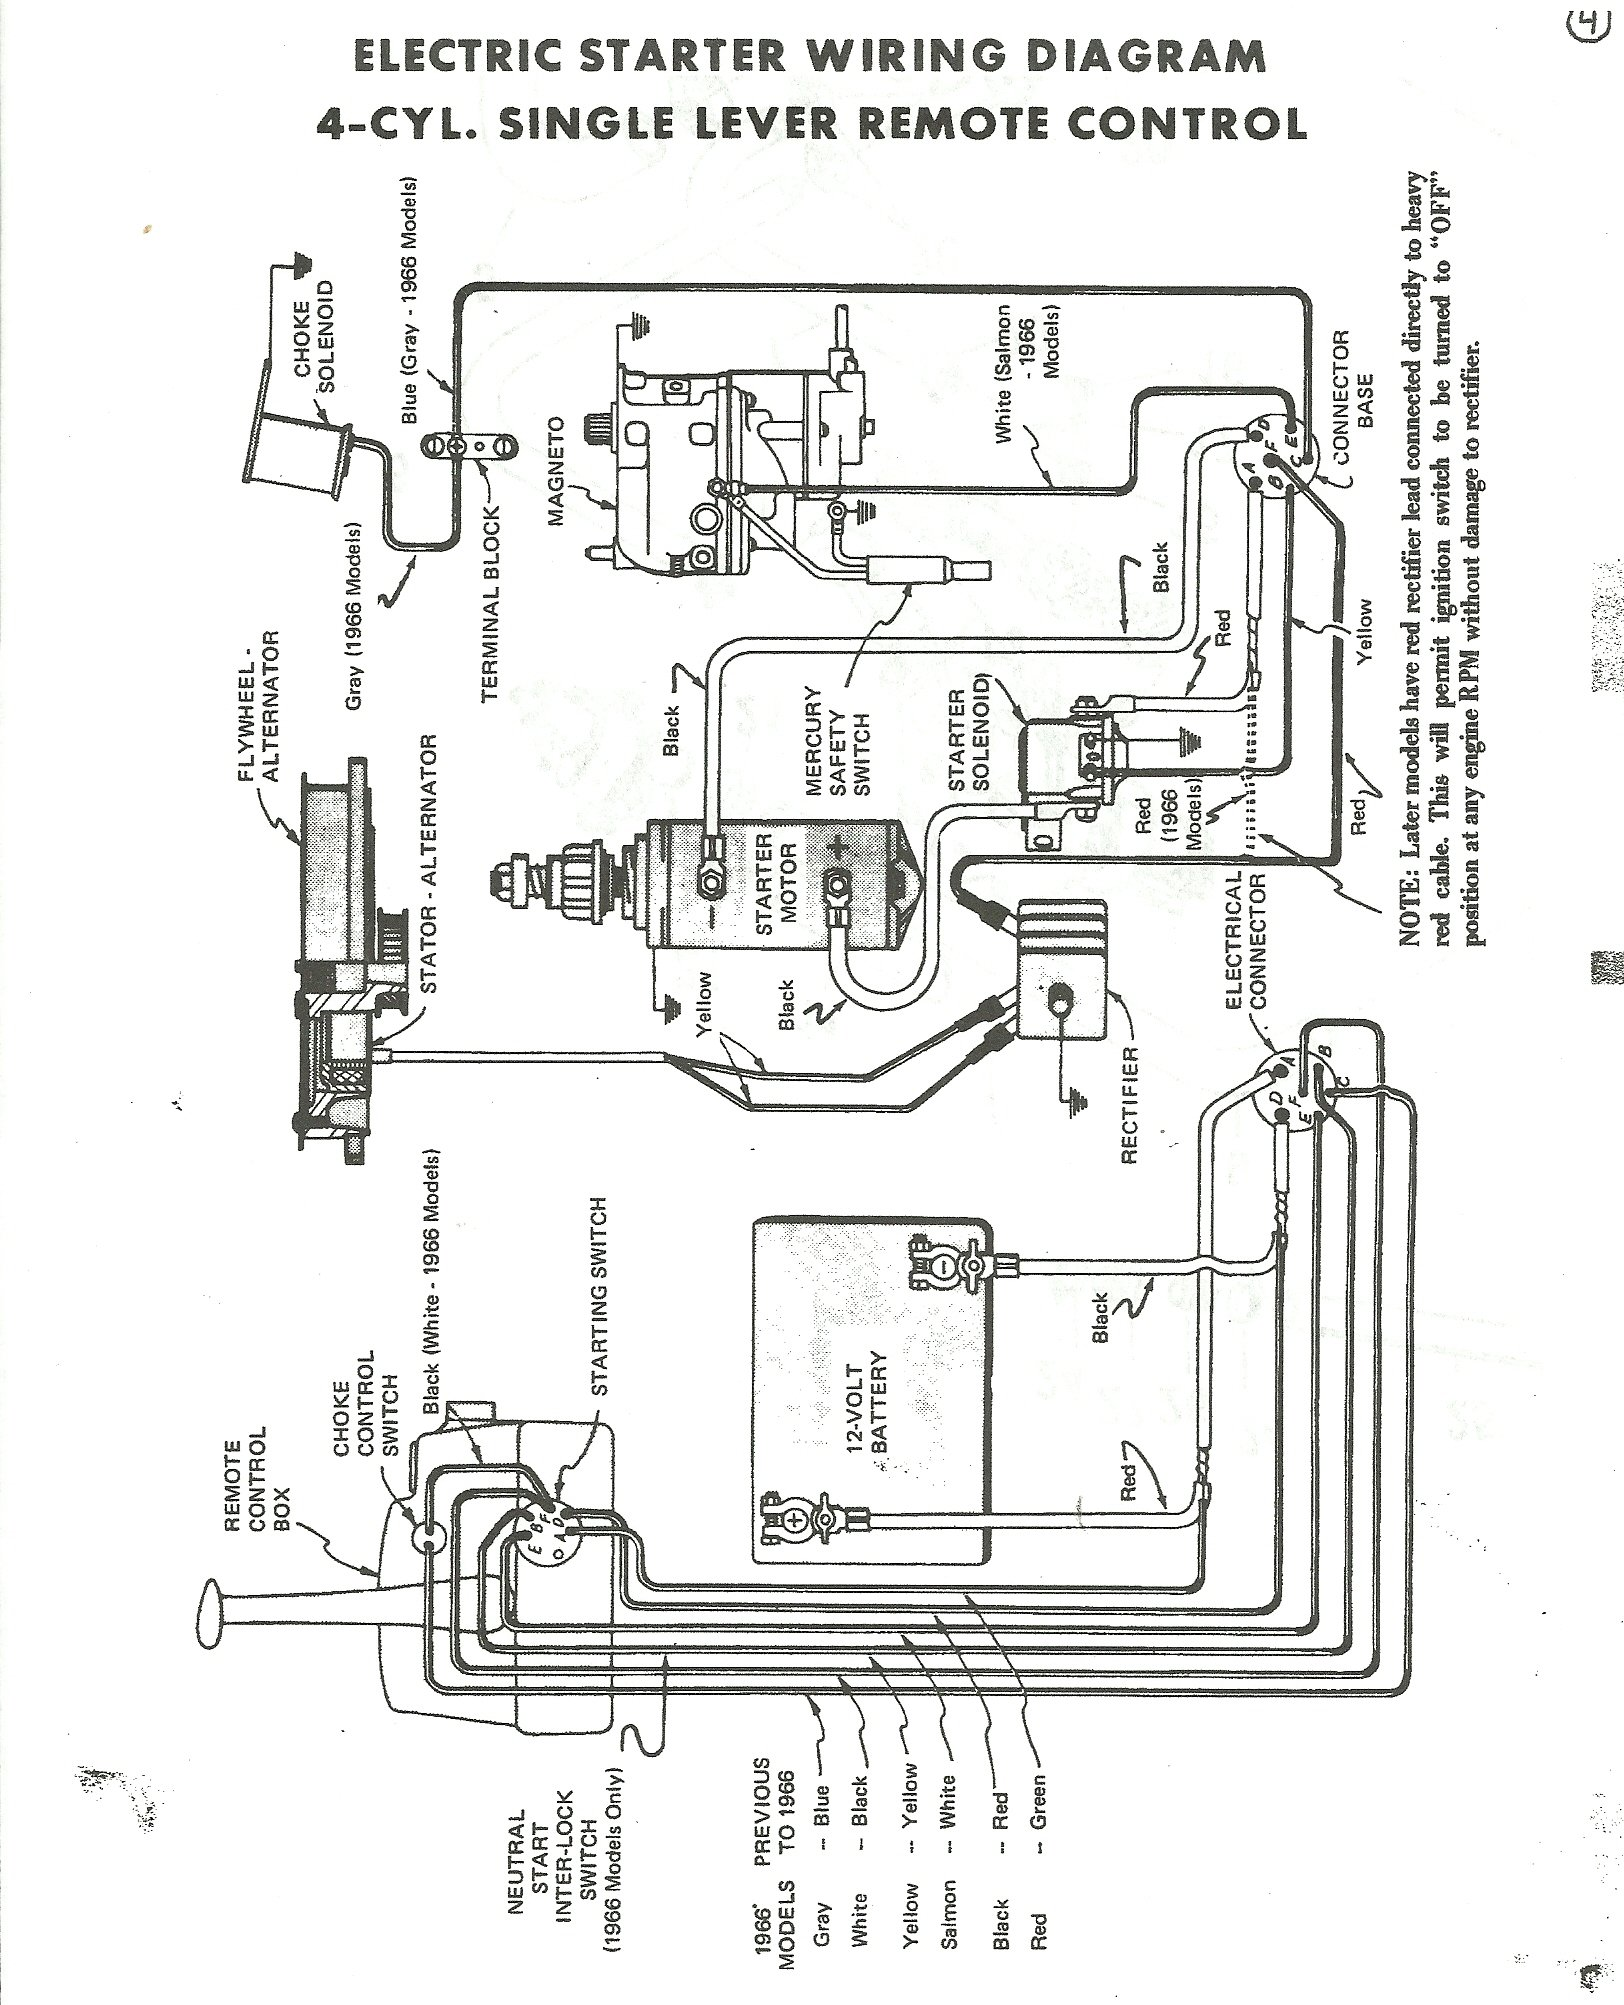 Spitronics Mercury 2 Wiring Diagram